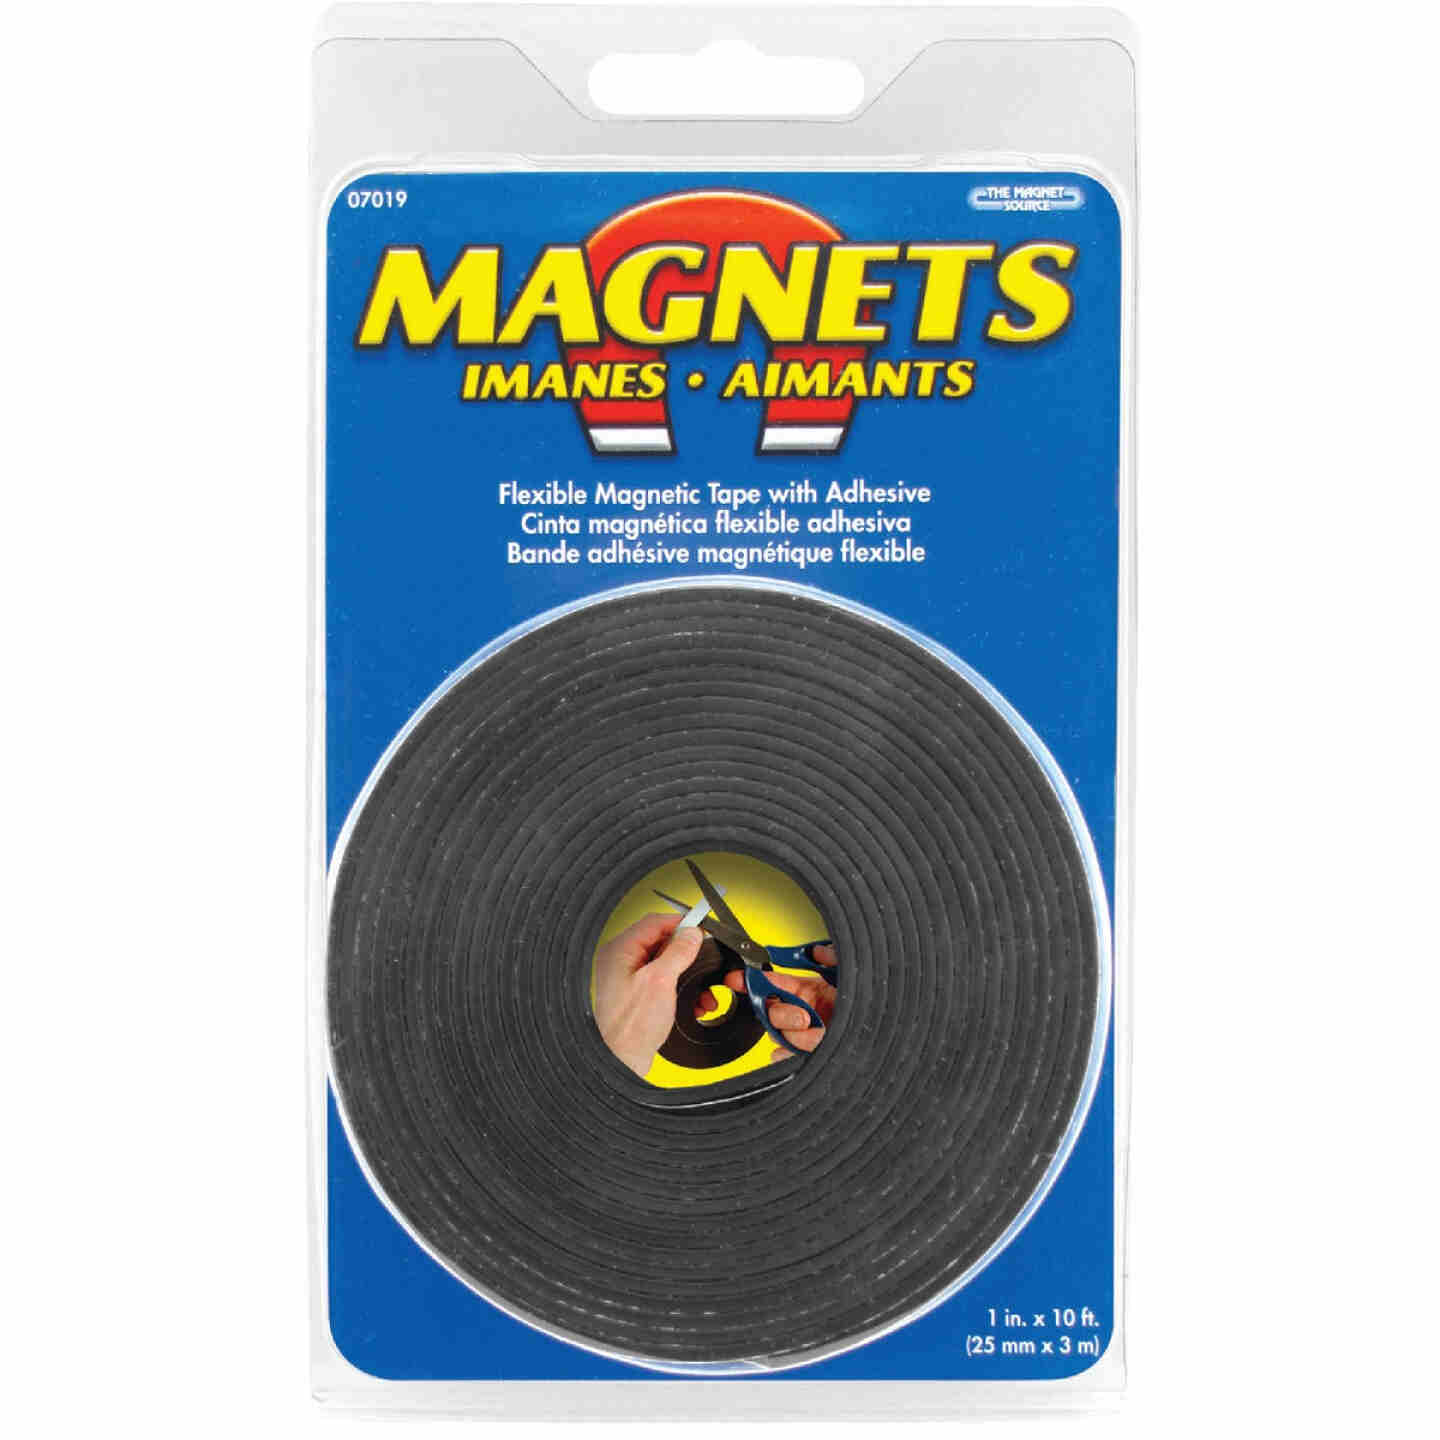 Master Magnetics 10 Ft. x 1 in. Magnetic Tape Image 2